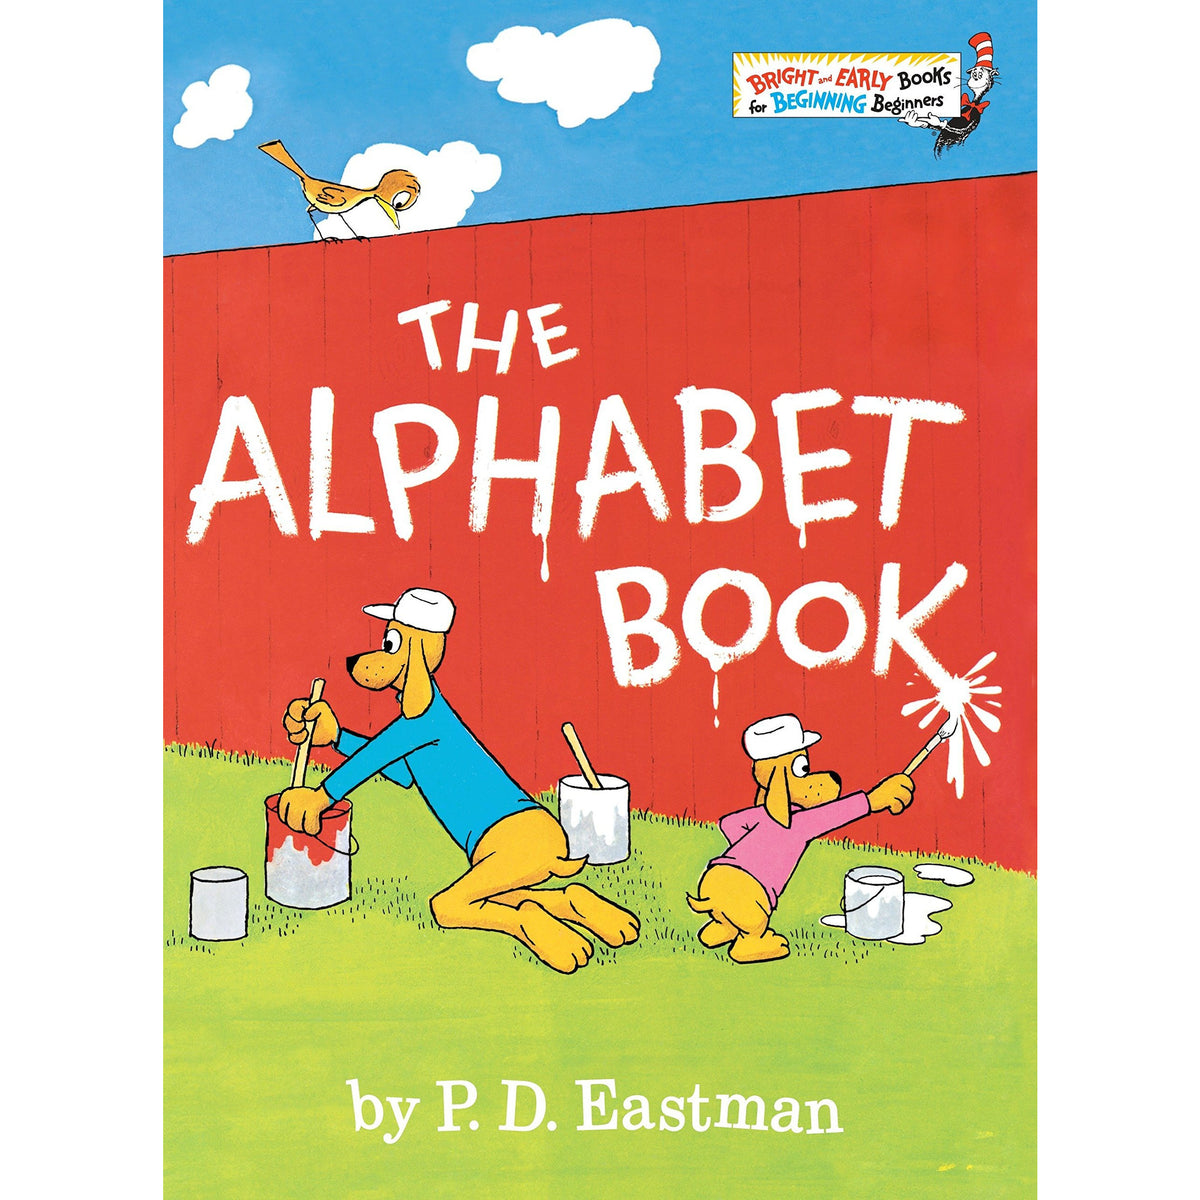 The Alphabet Book ISBN: 9780553511116 canada ontario hardcover pd eastman bright early book